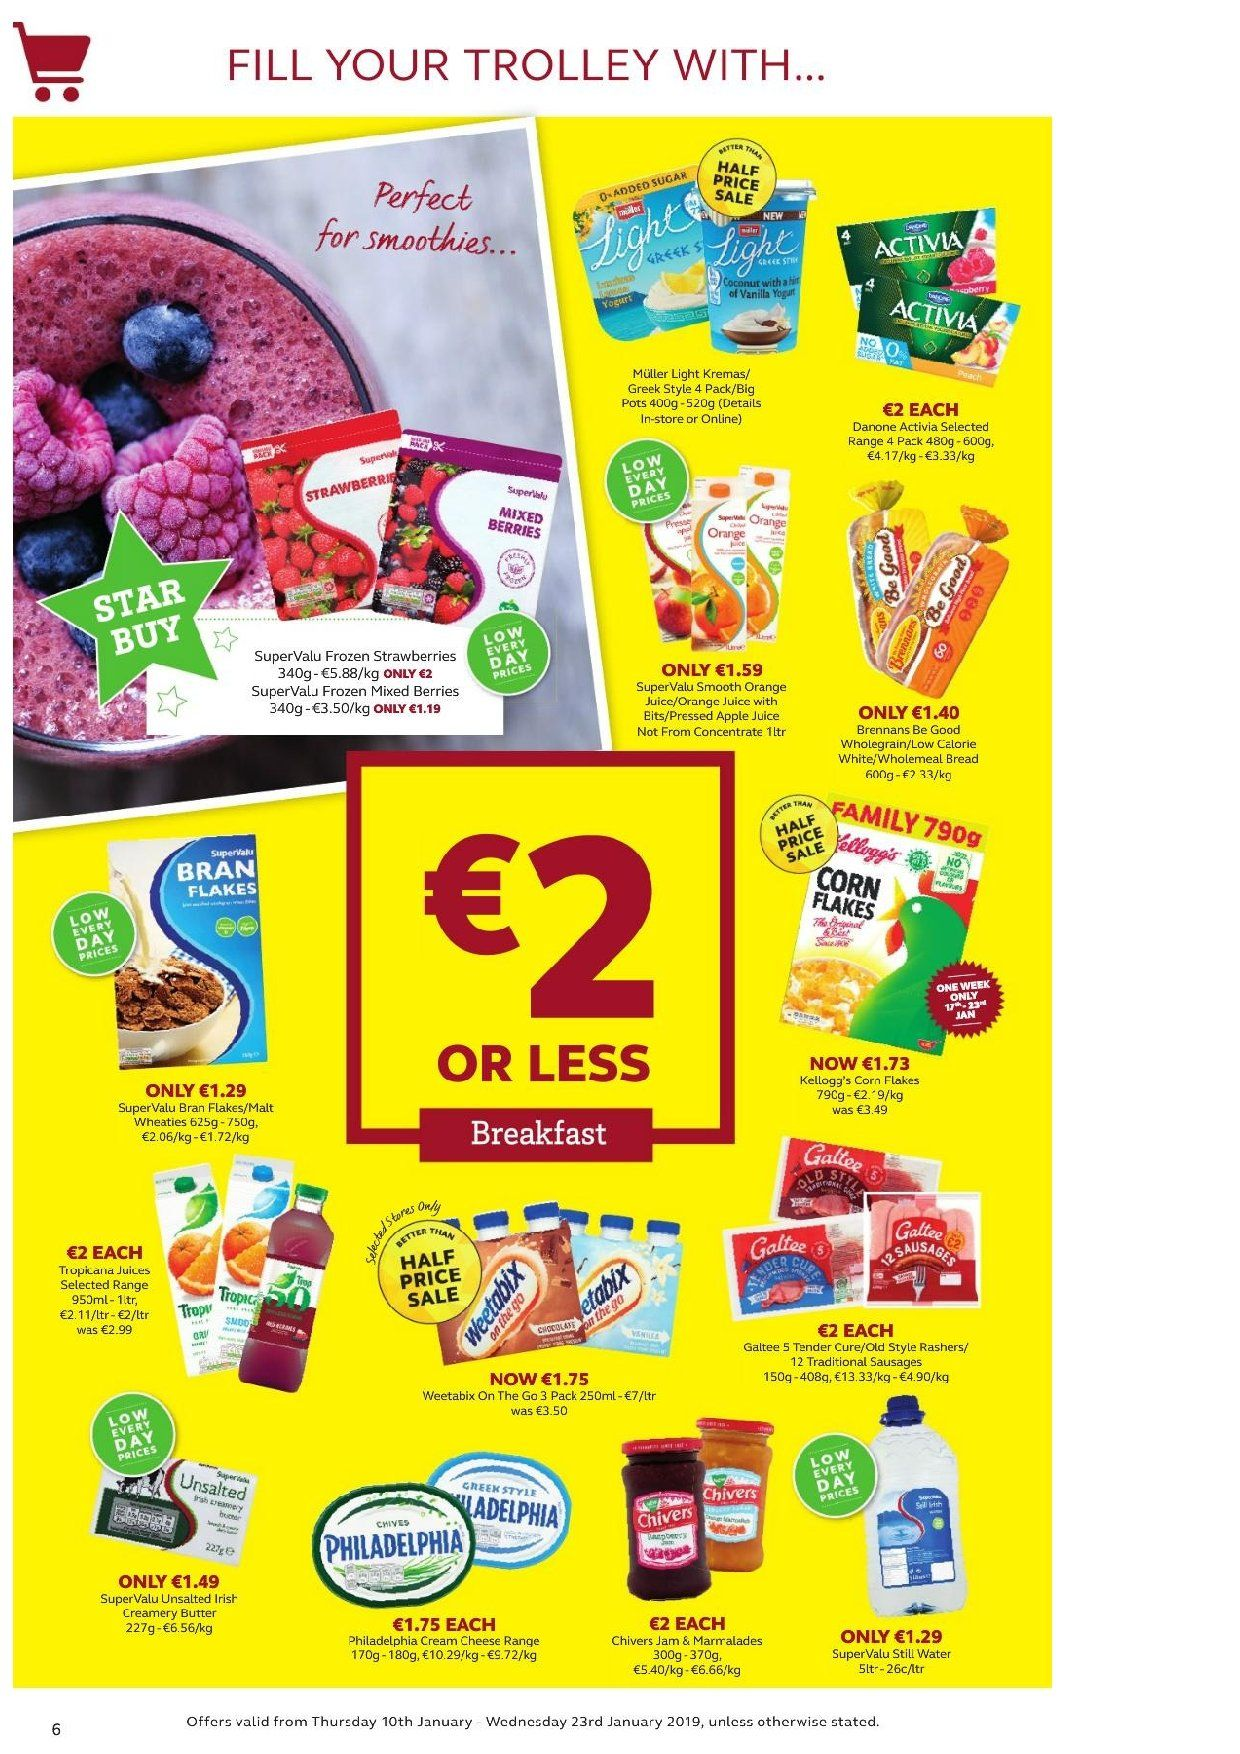 SuperValu offer  - 10.1.2019 - 23.1.2019 - Sales products - bread, strawberries, cream cheese, rashers, sausage, Philadelphia, cheese, Danone, Müller, Activia, butter, malt, corn flakes, Weetabix, bran flakes, apple juice, orange juice, juice, smoothie, mineral water, trolley. Page 11.